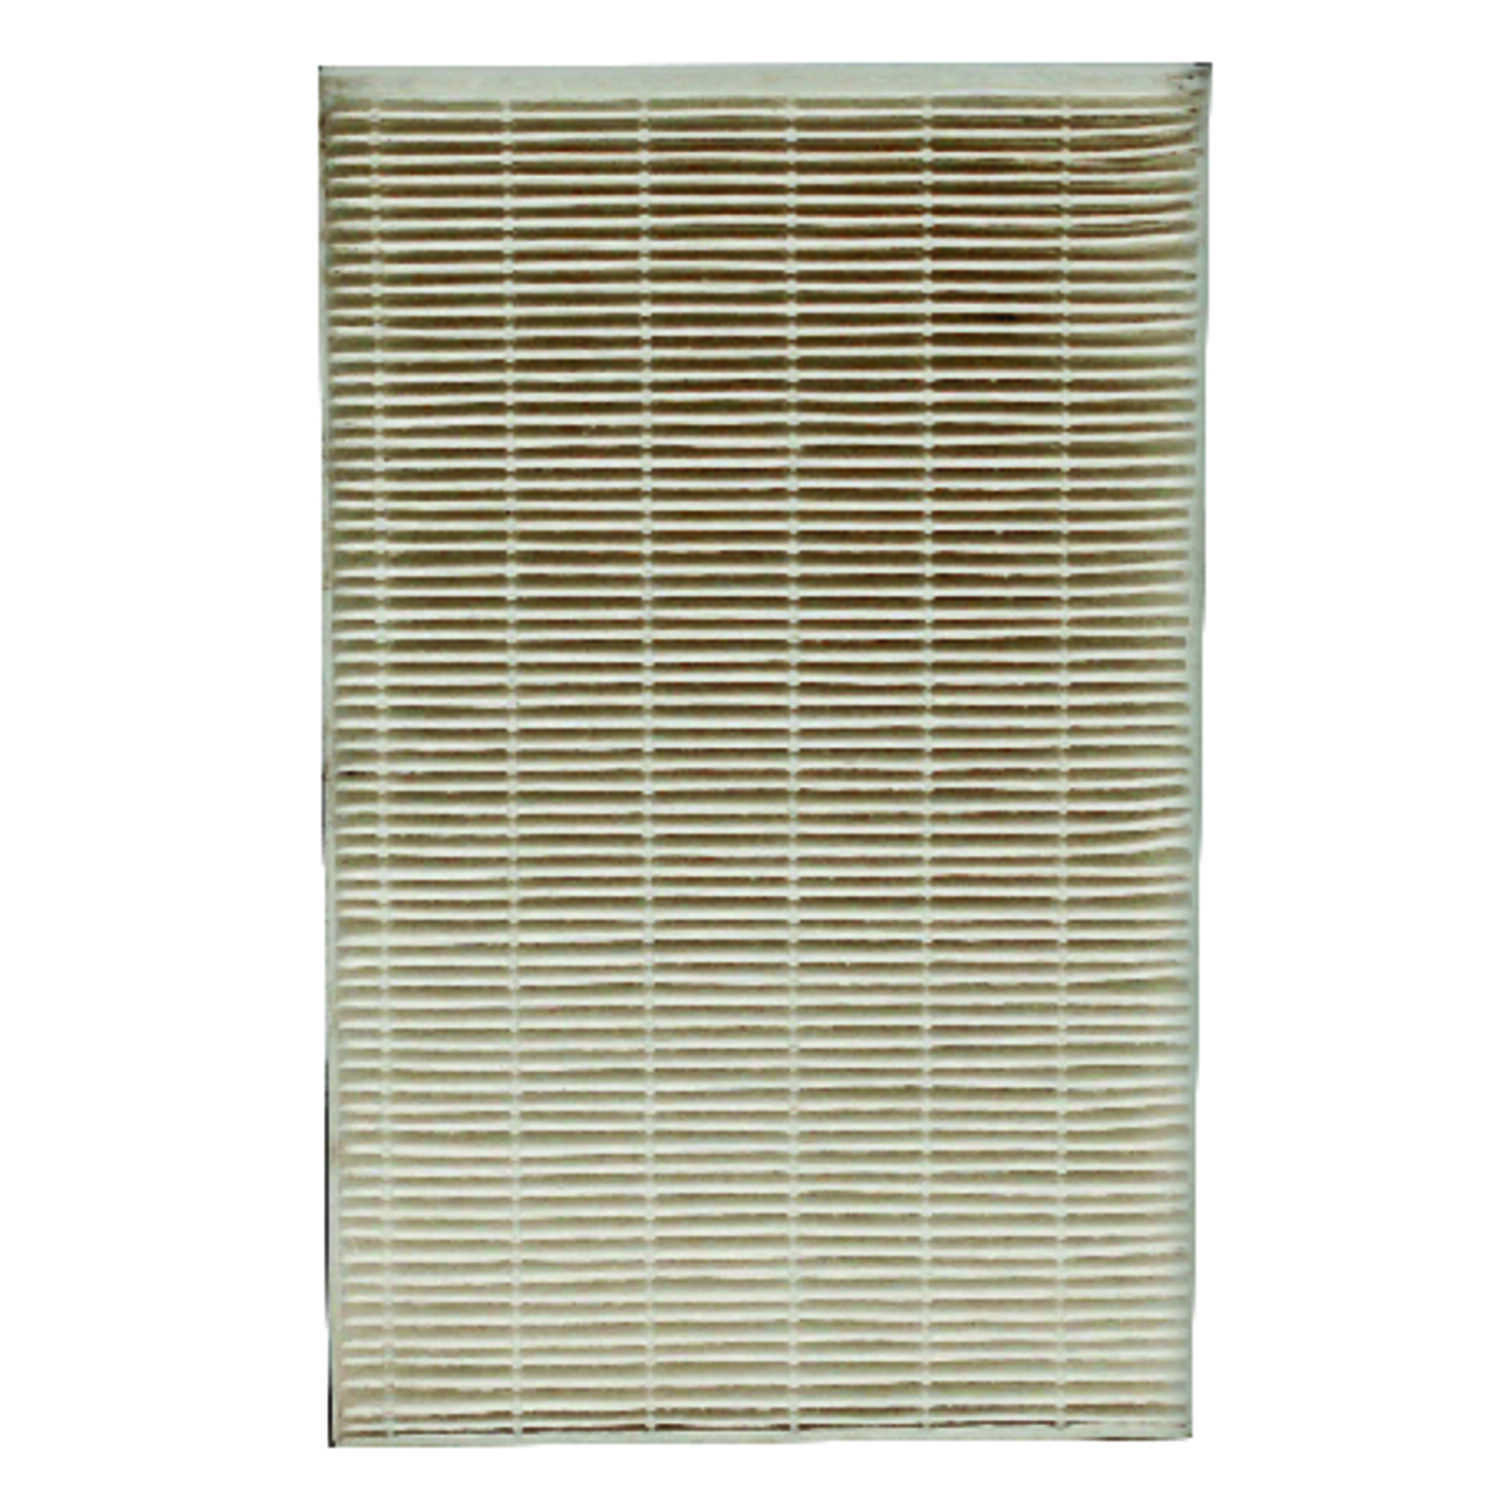 Honeywell  10.2 in. H x 1.65 in. W Rectangular  HEPA Air Purifier Filter